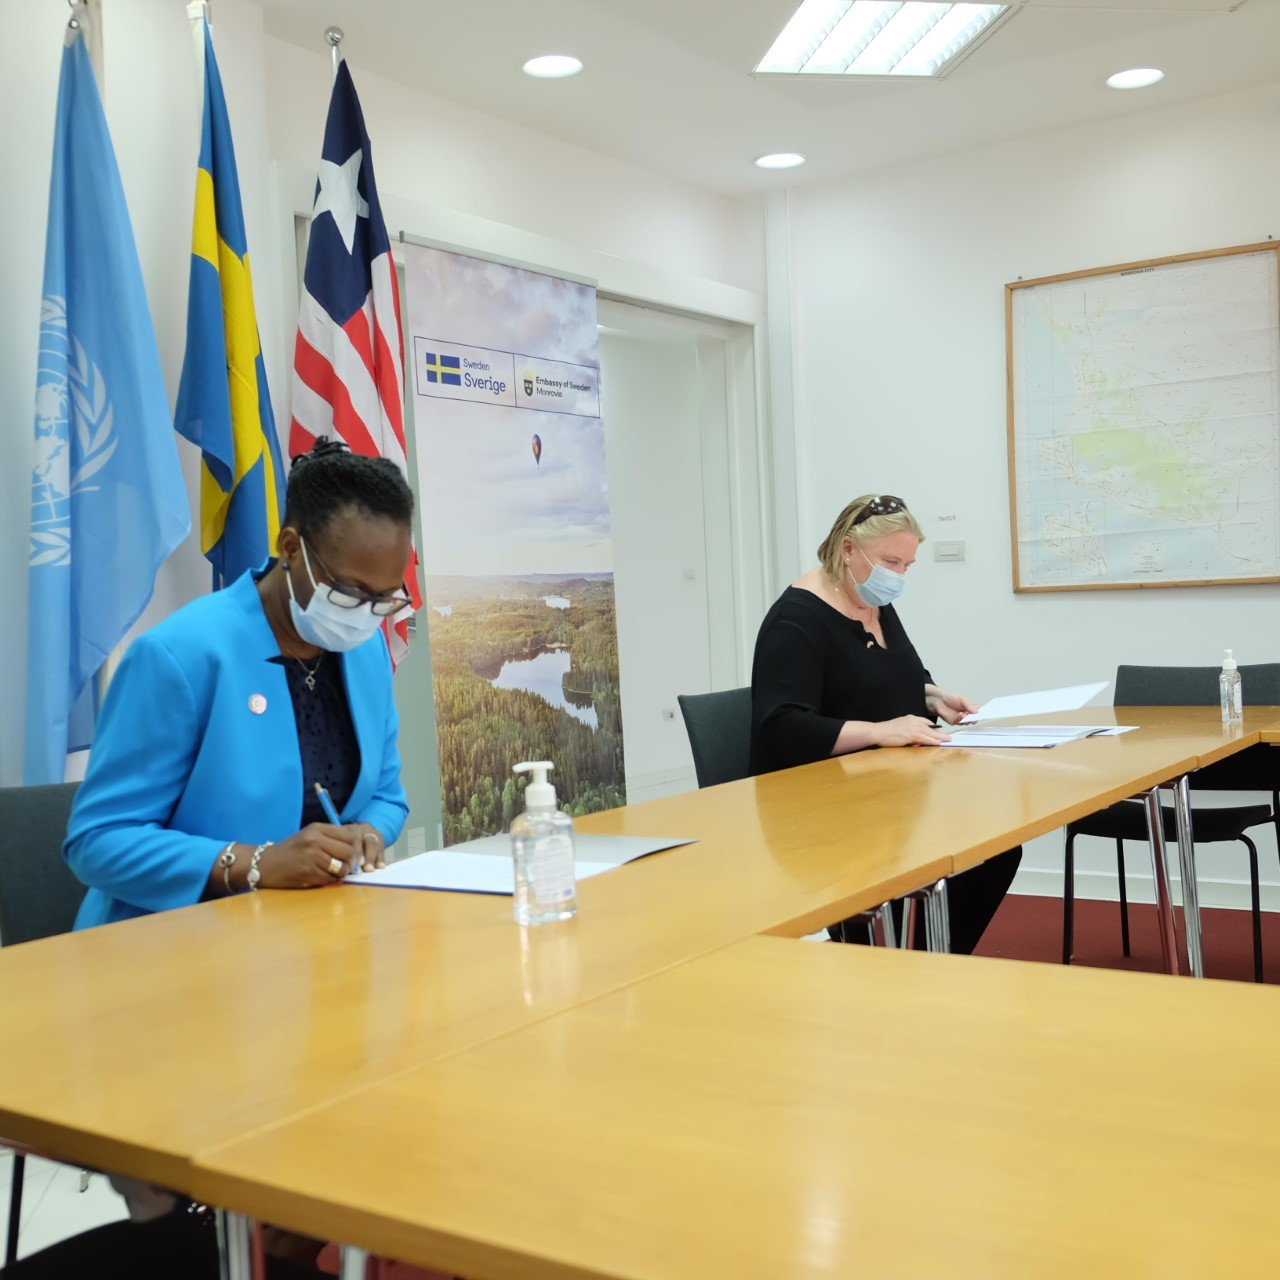 Sweden and UNDP Sign US$ 4.8 million Financing Agreement to Support Liberia's Electoral Process